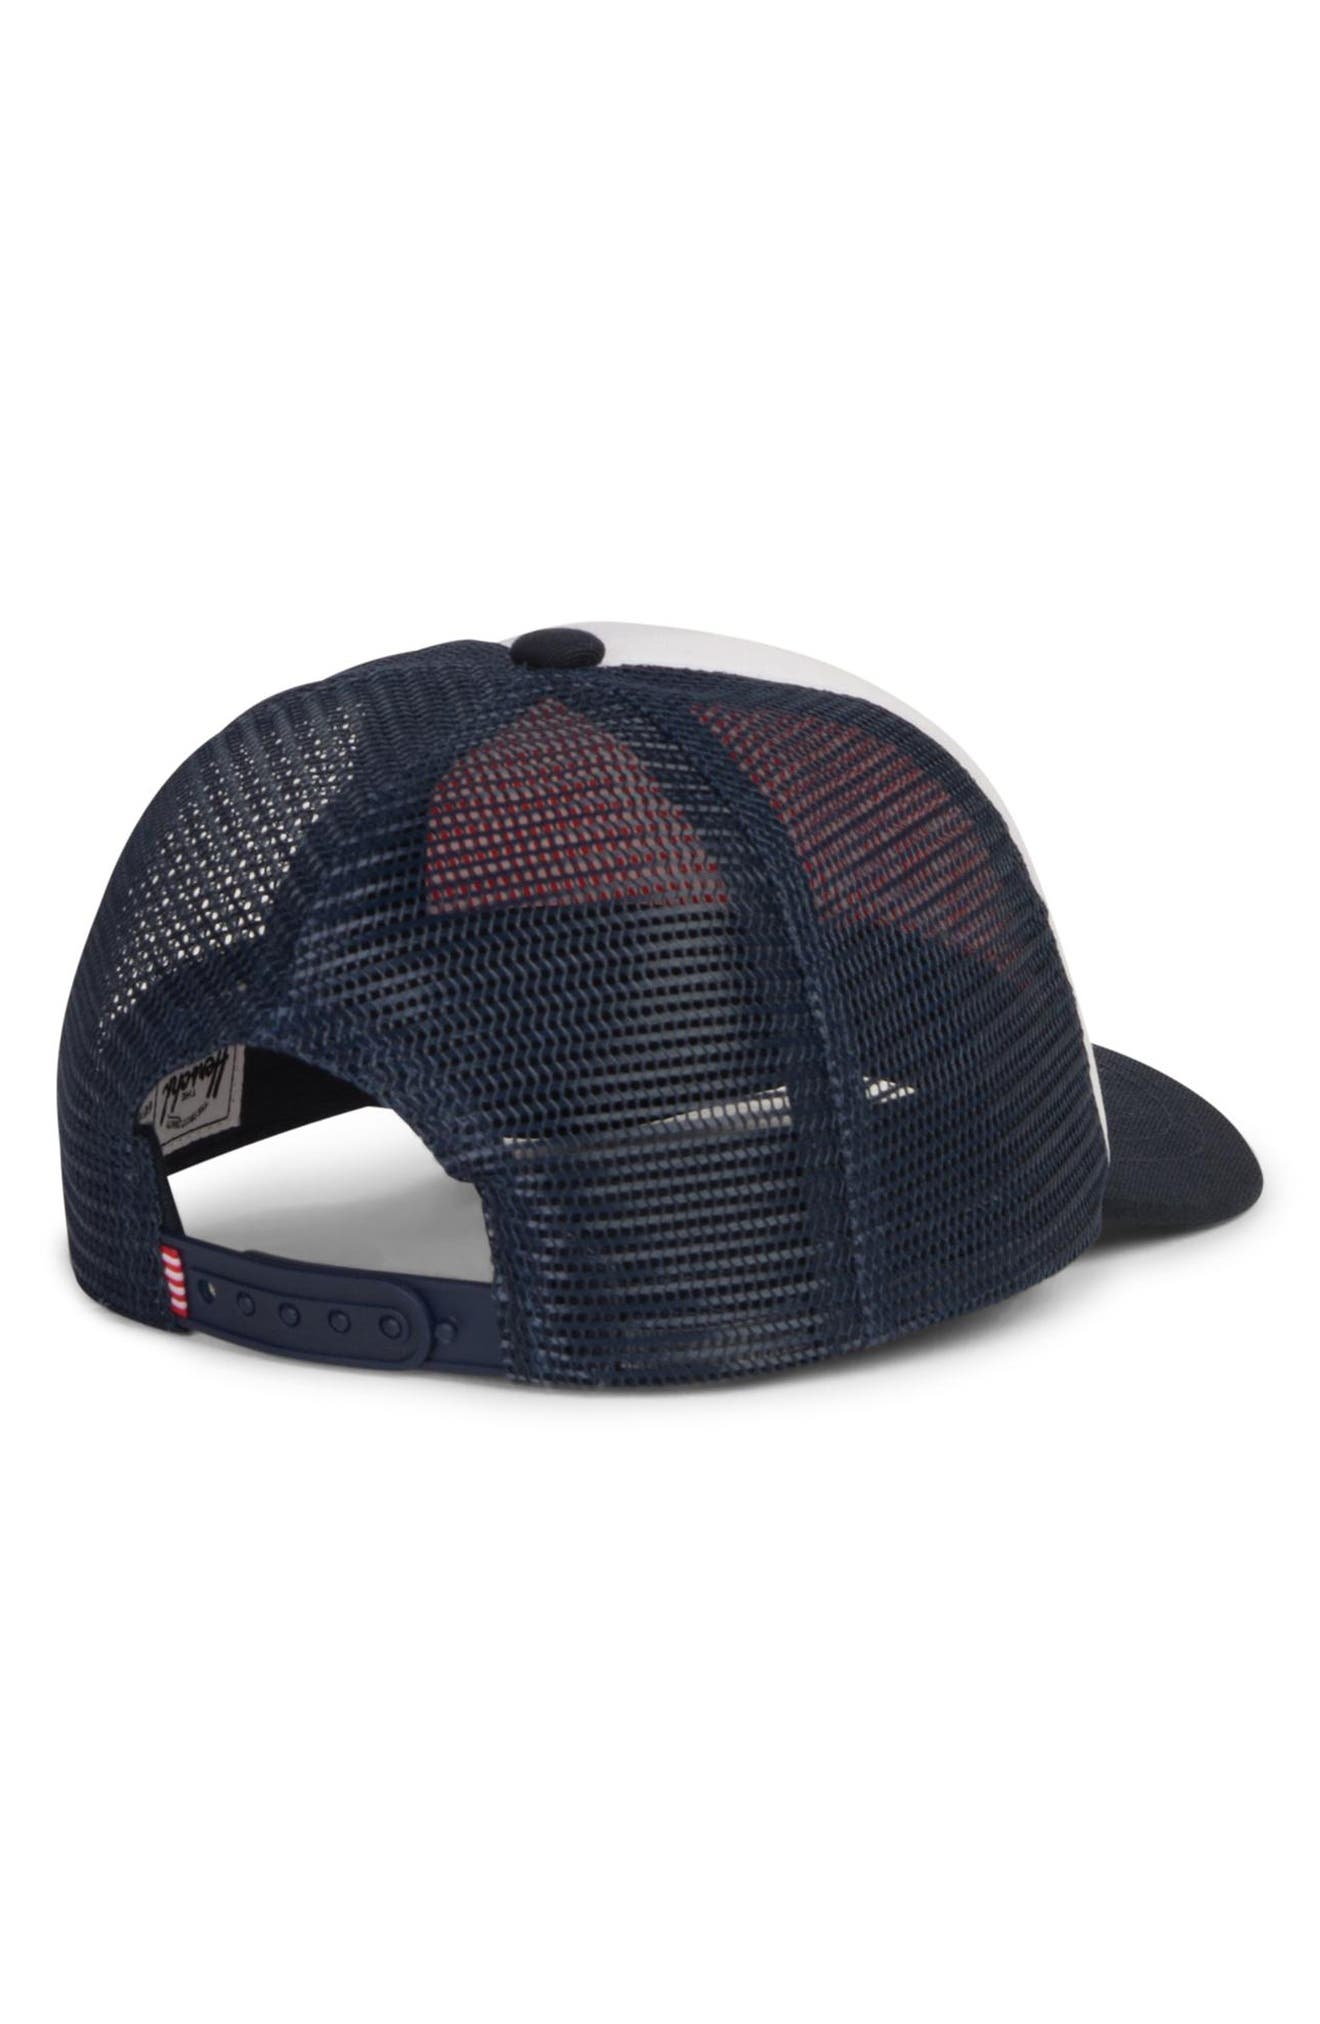 Sprout Whaler Mesh Hat,                             Alternate thumbnail 2, color,                             WHITE/ NAVY